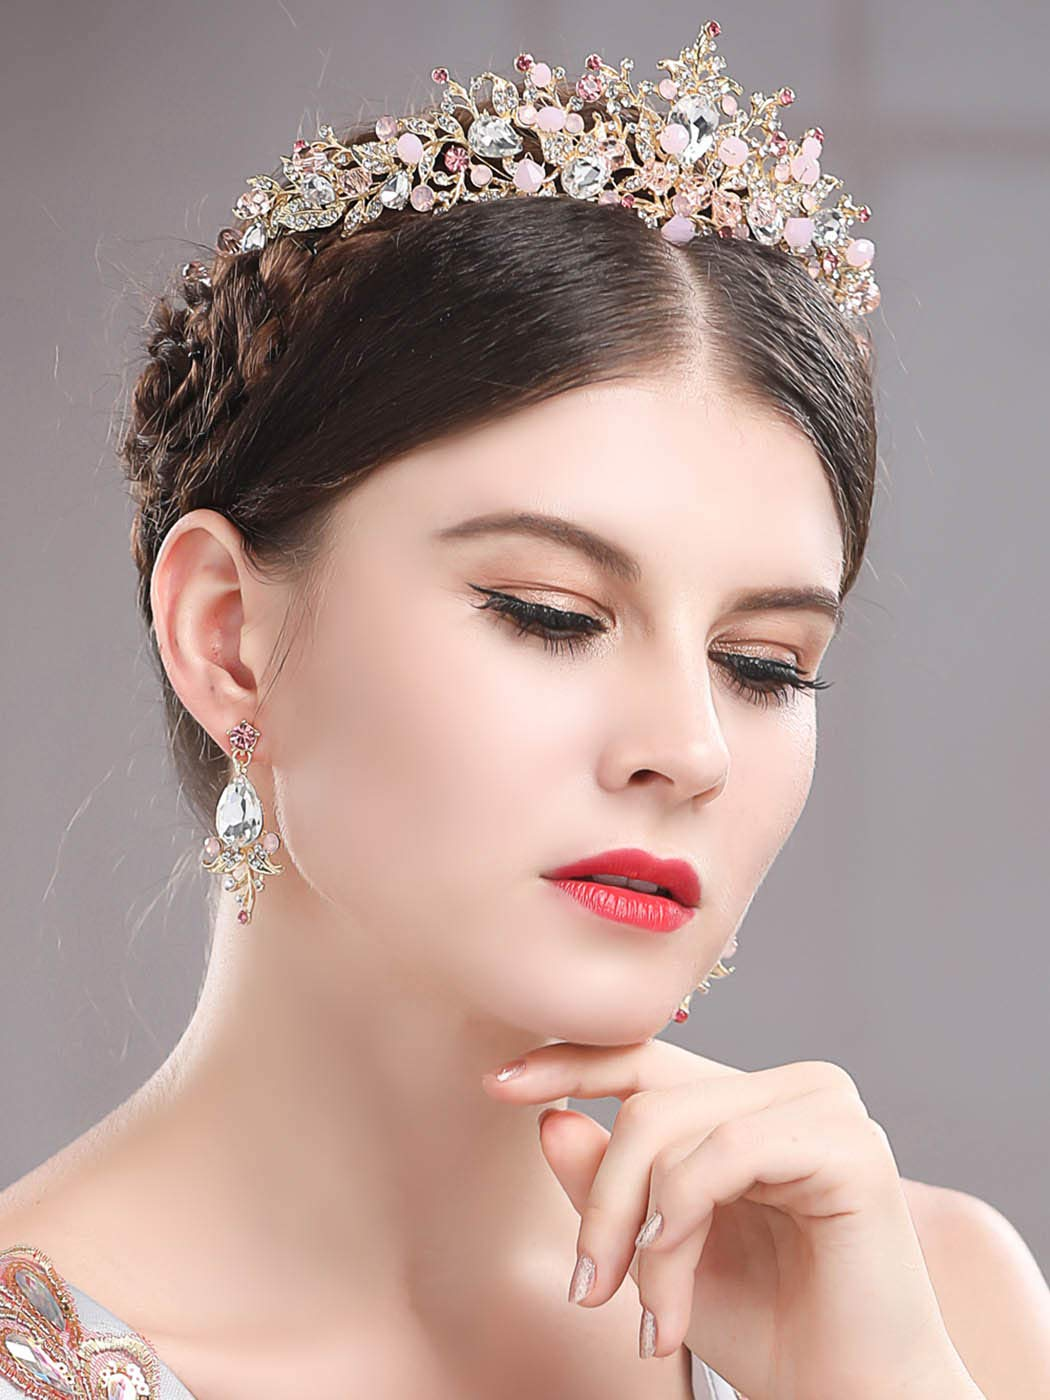 61bDildUGnL._SL1400_ Gold Princess Crown Tiara with Matching Earring Set | Sparkly Coral Reef Shaped Design + 2 FREE Hair Pins (Pink CZ Crystals)